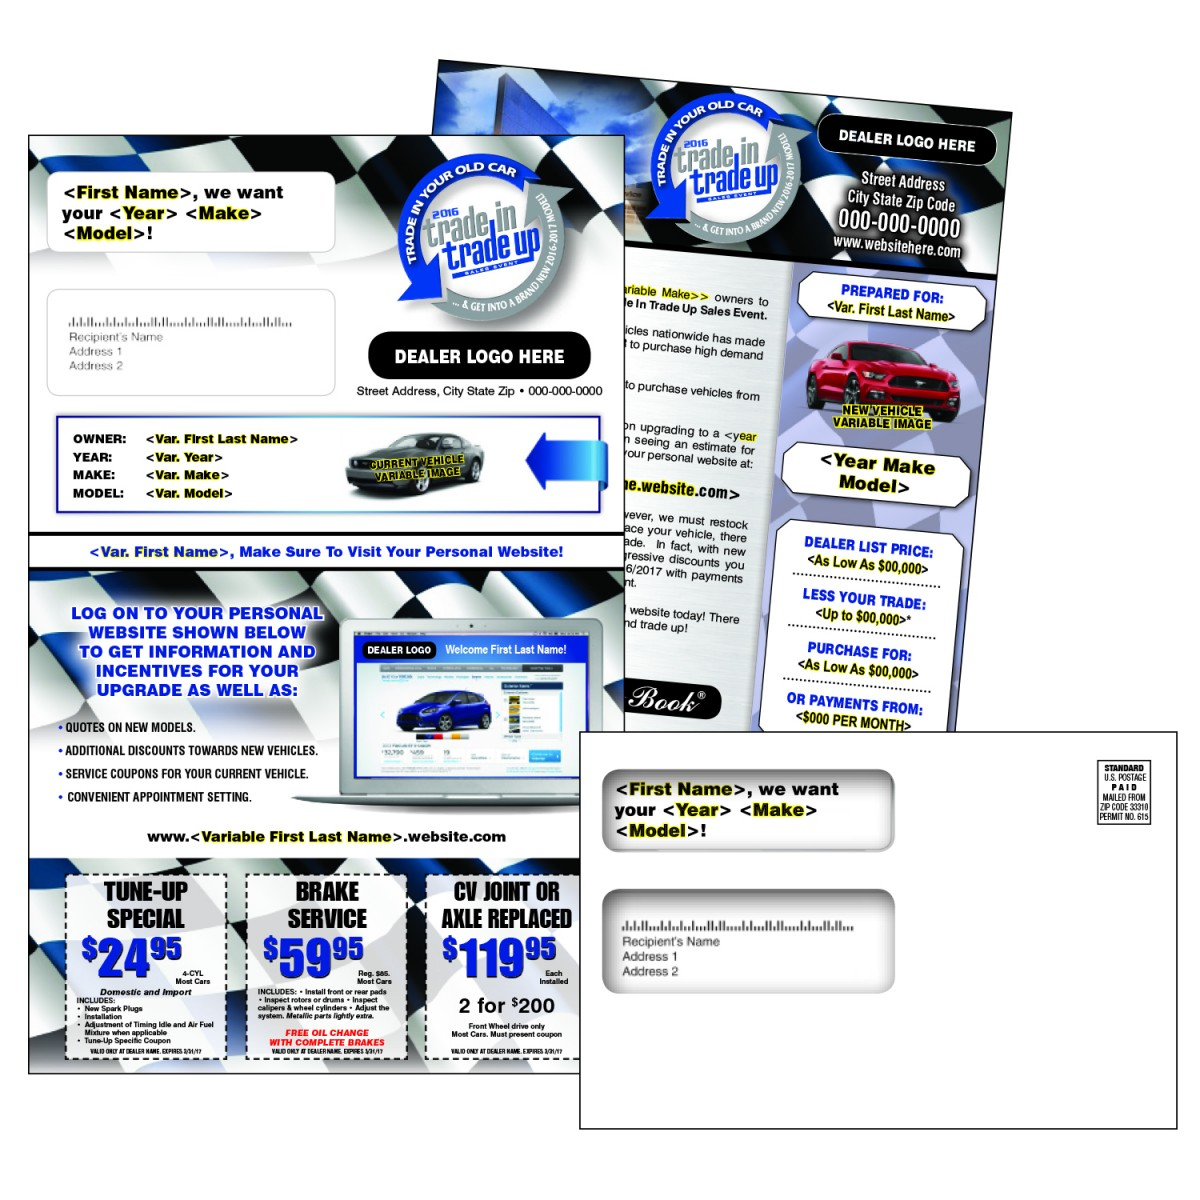 Auto Buyback Trade In & Trade Up Sales Event